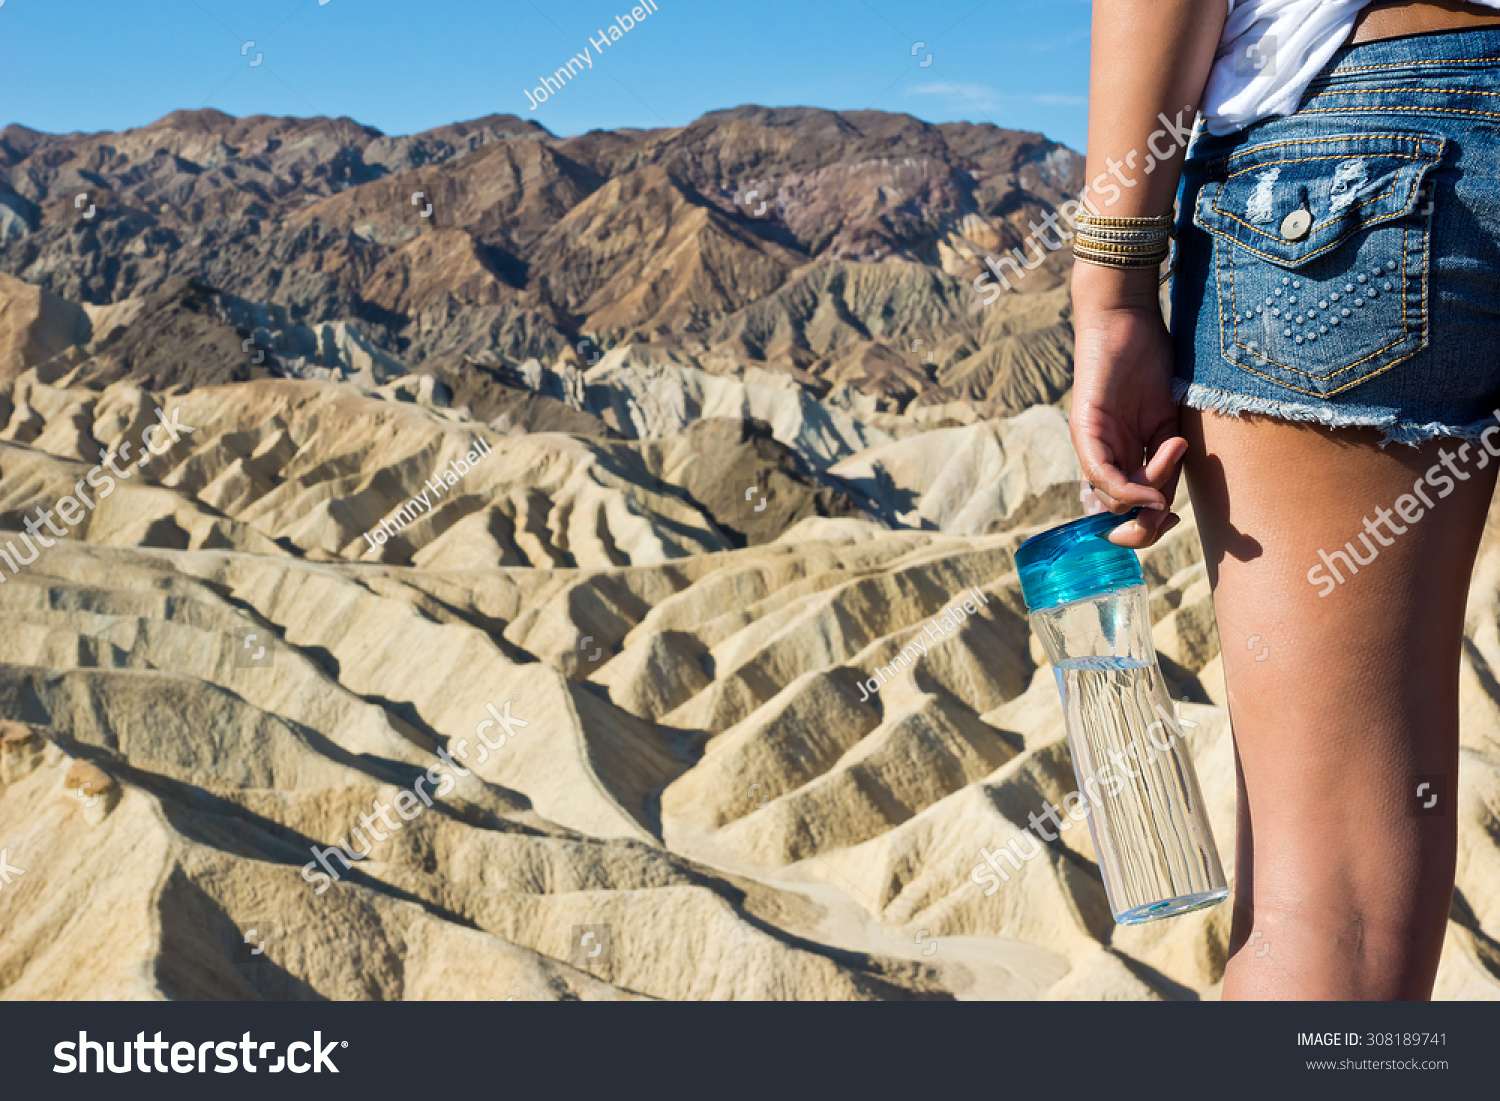 Water Bottle And The Desert Stock Photo 308189741 ...